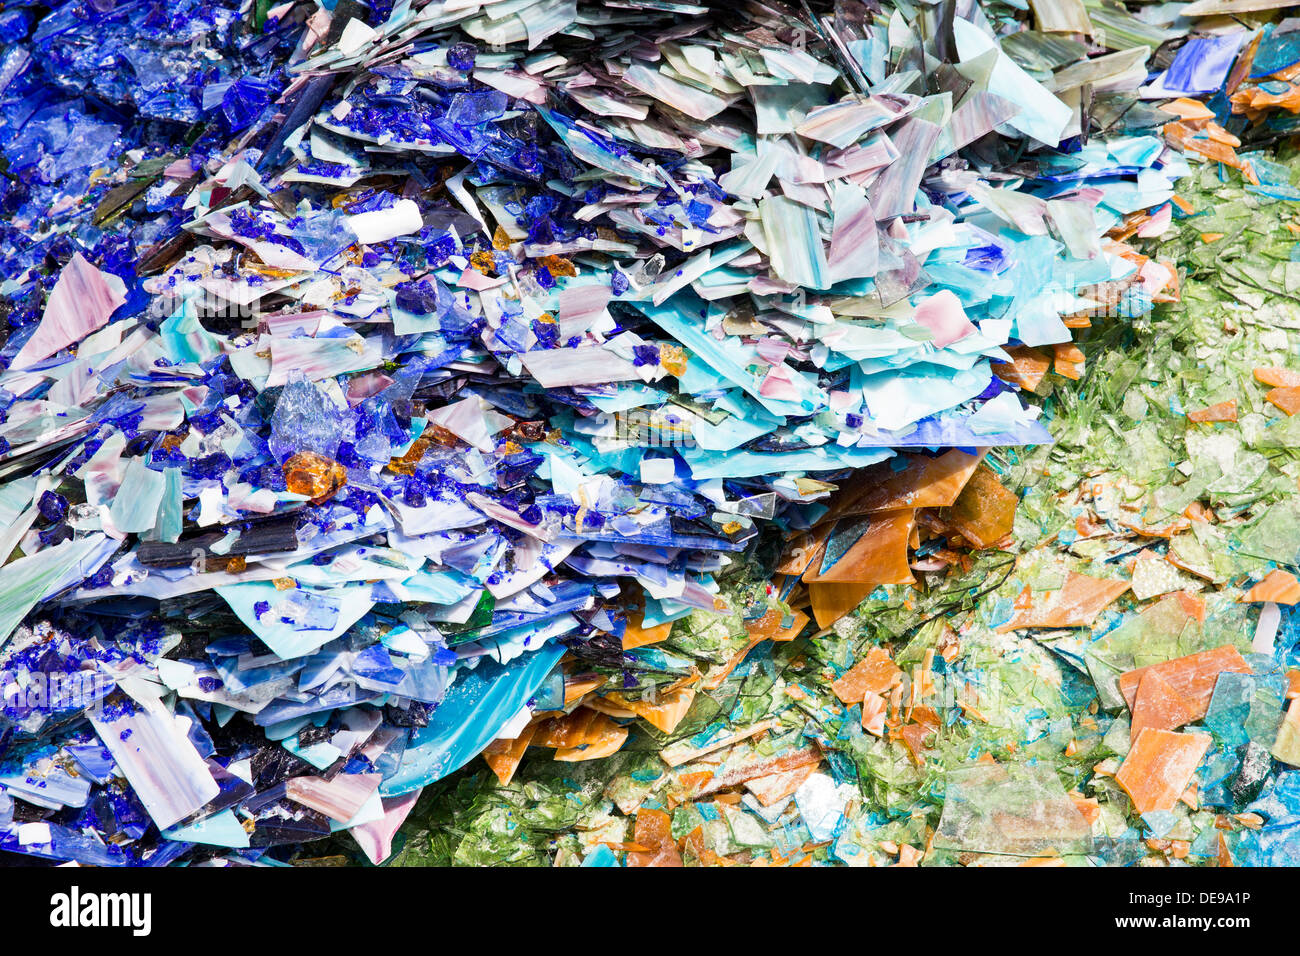 A scrap glass yard including stained glass and marbles. - Stock Image